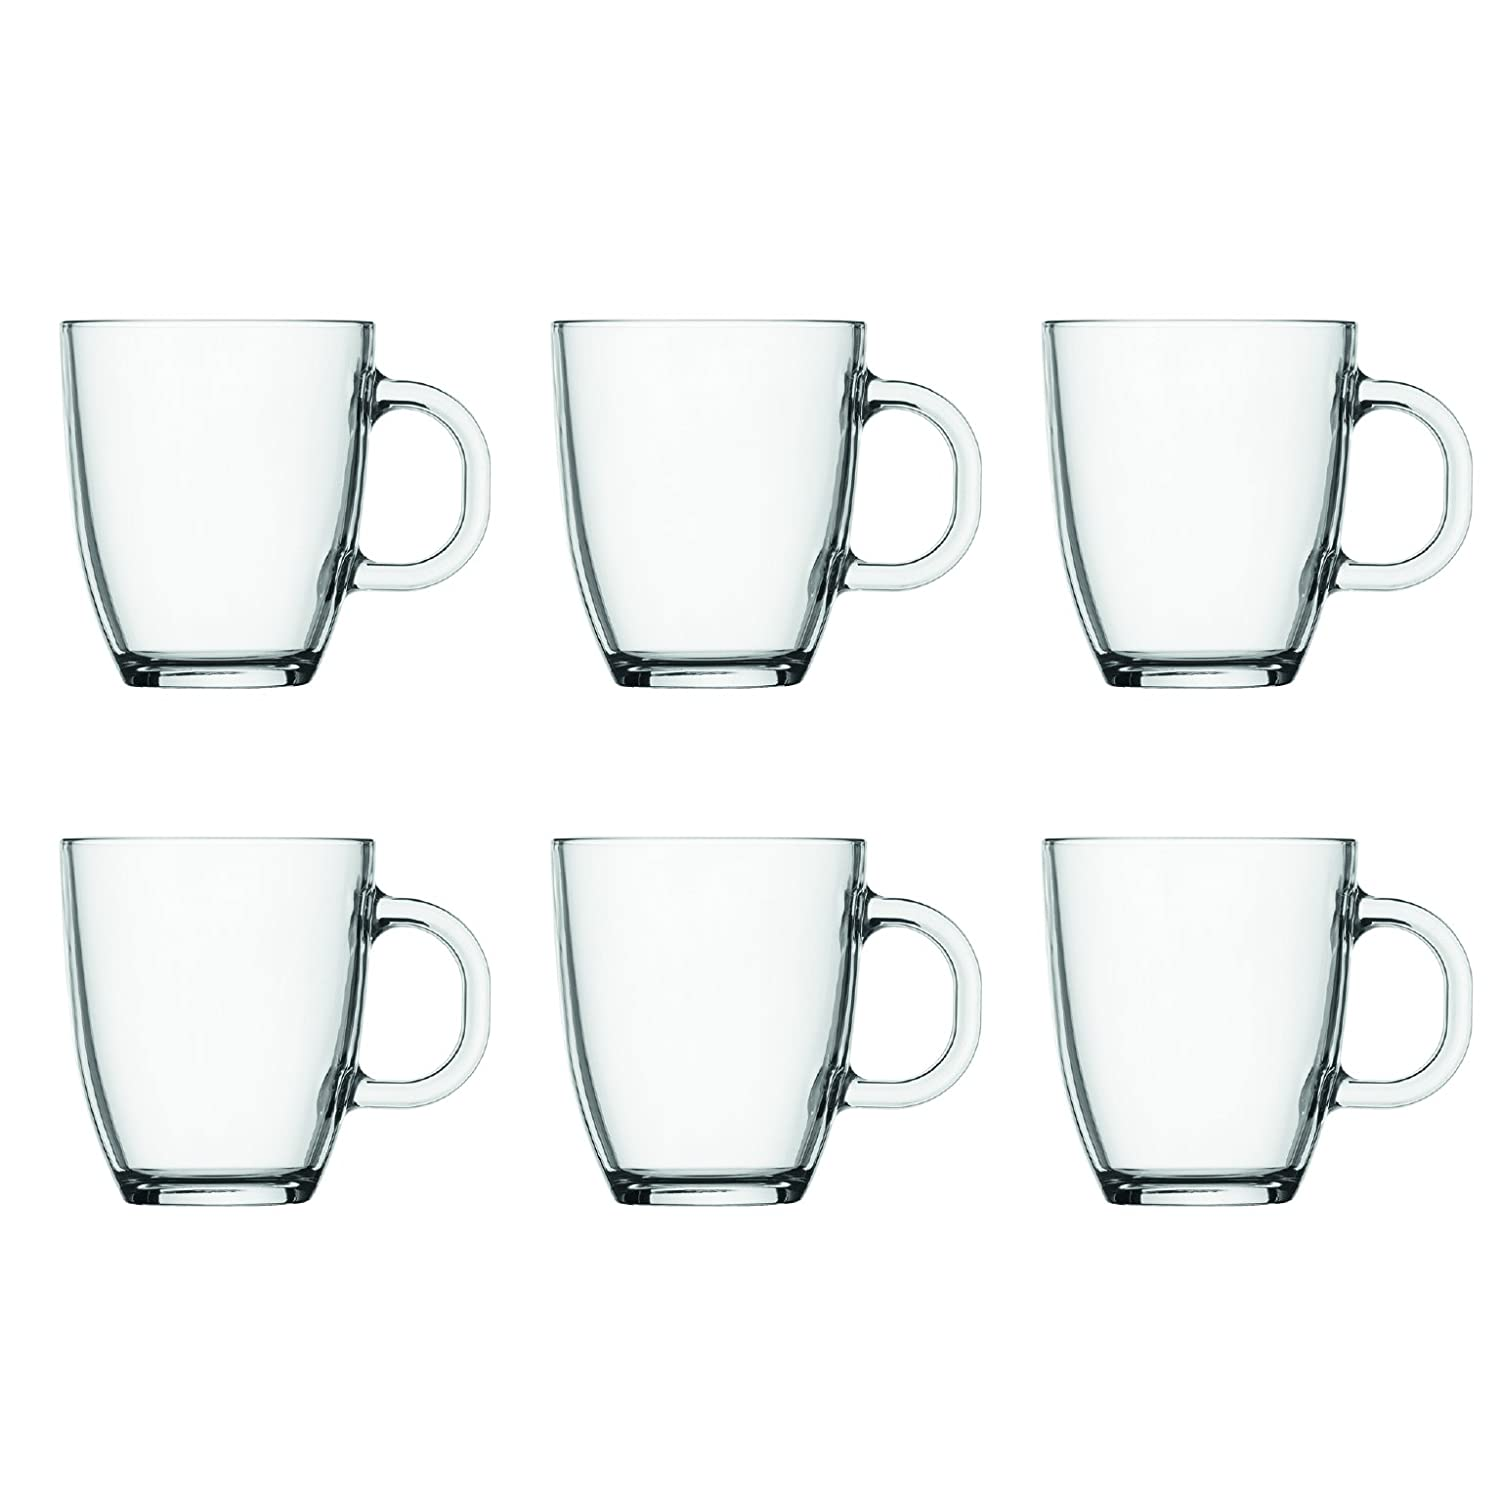 BODUM 11239-10-2 0.35 Litre 6-Piece Borosilicate Glass Bistro Coffee Mug, Transparent